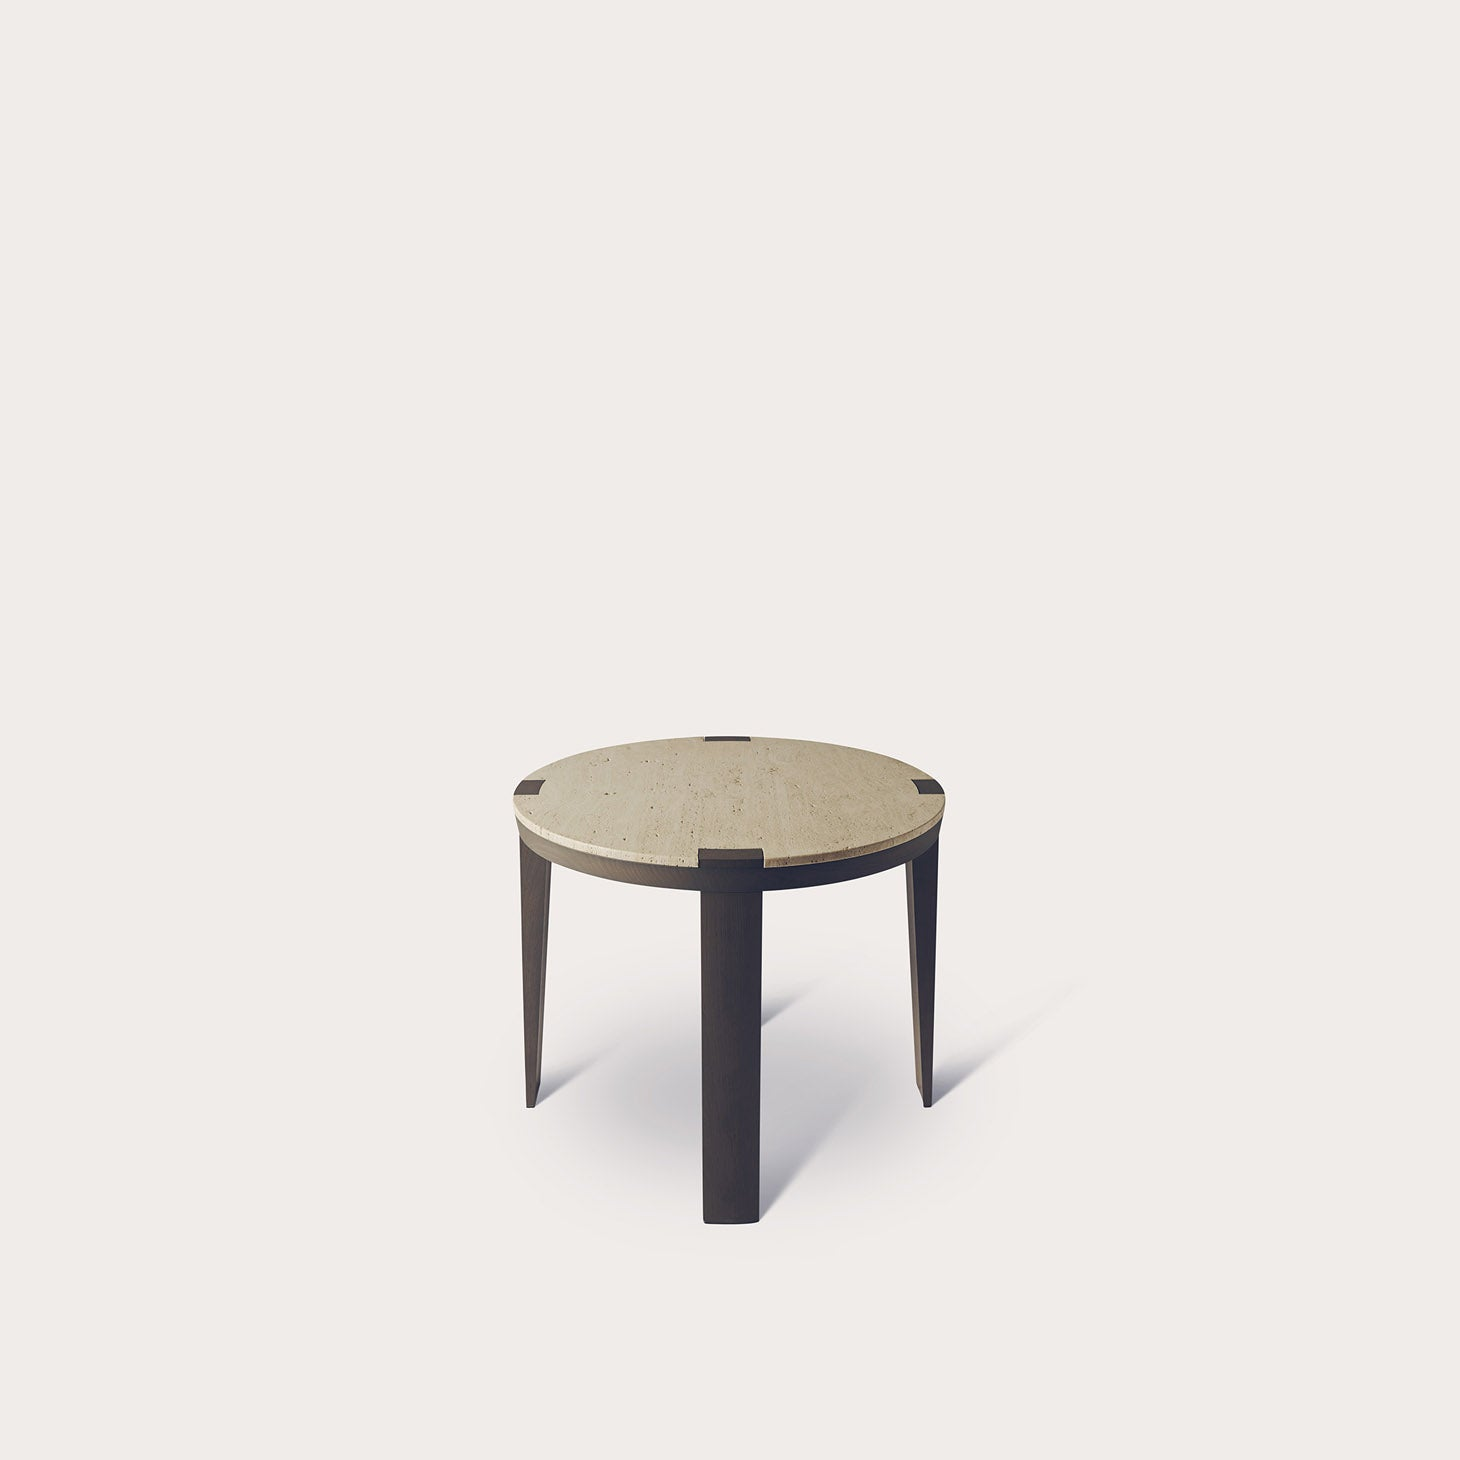 SUMO Tables Dan Yeffet Designer Furniture Sku: 765-230-10011